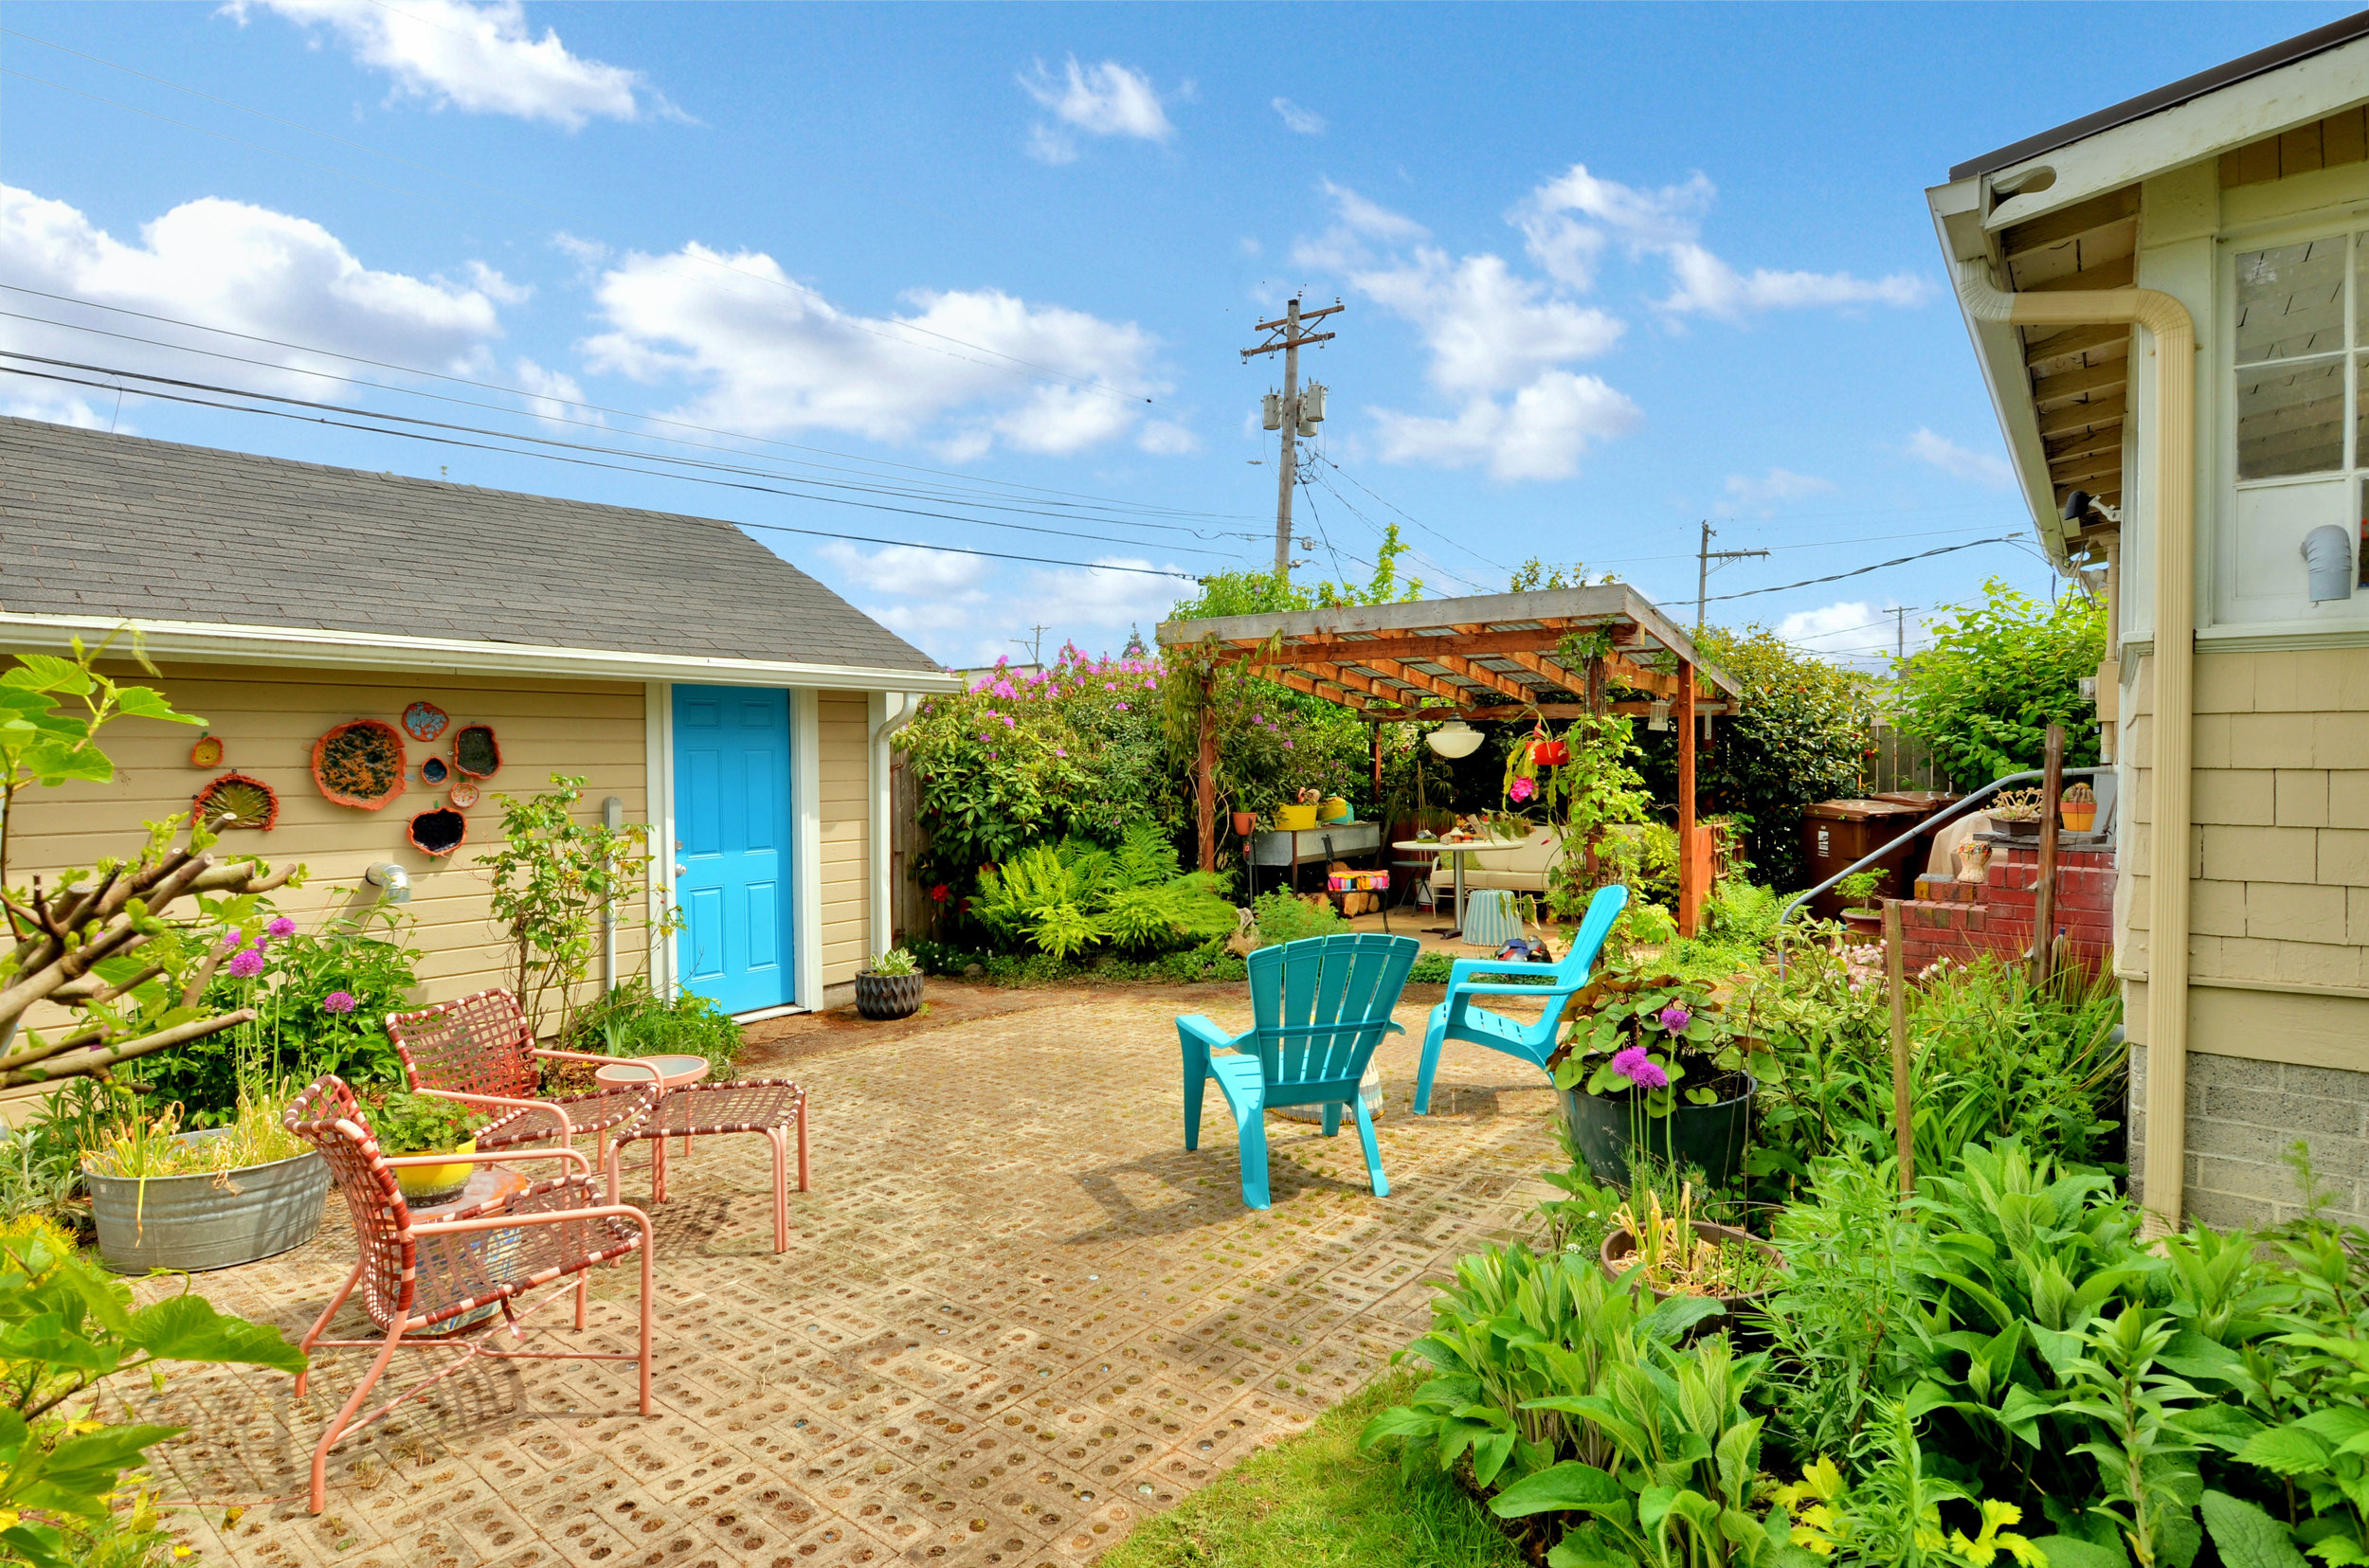 Lush flower beds and an inviting patio accompany the detached garage/studio in the back.